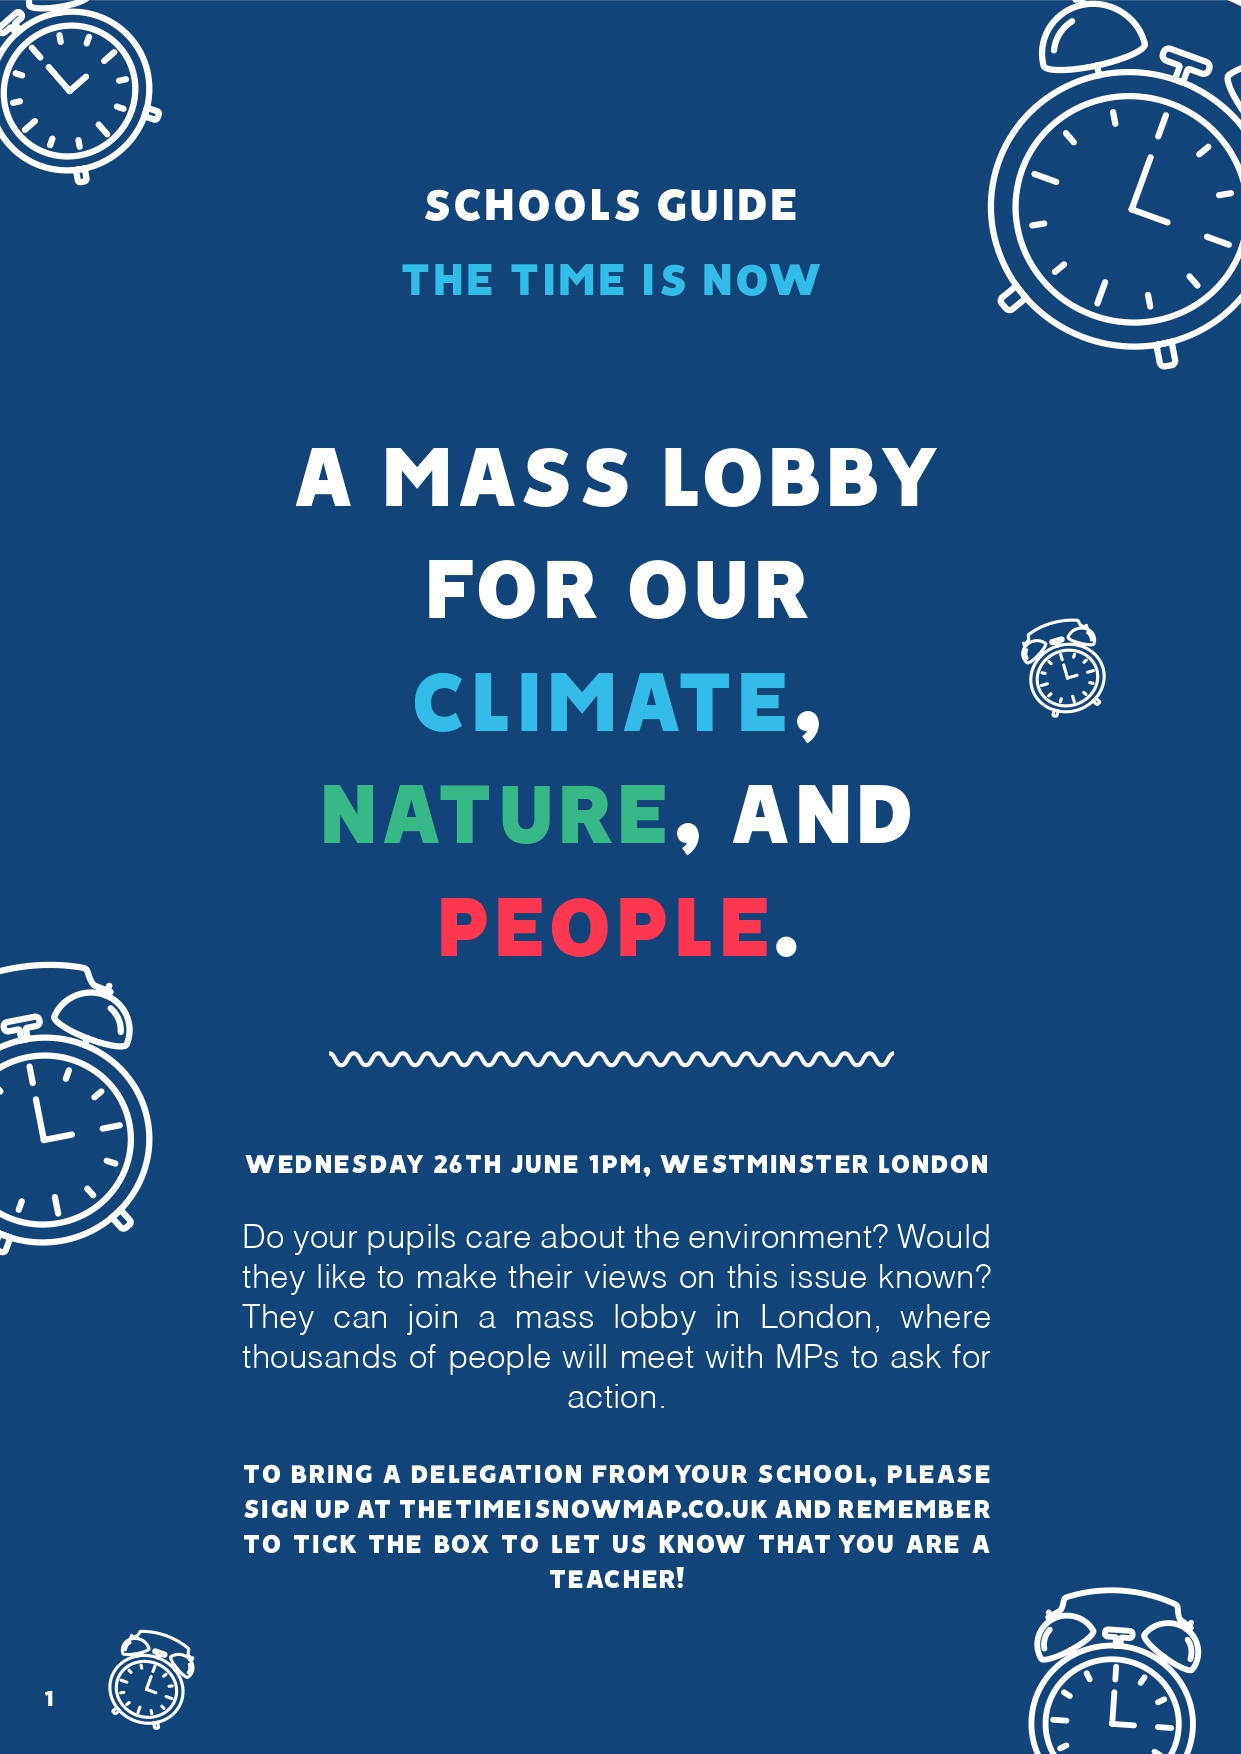 School Guide The Time Is Now: 26th June, a mass lobby for the climate, environment, and people